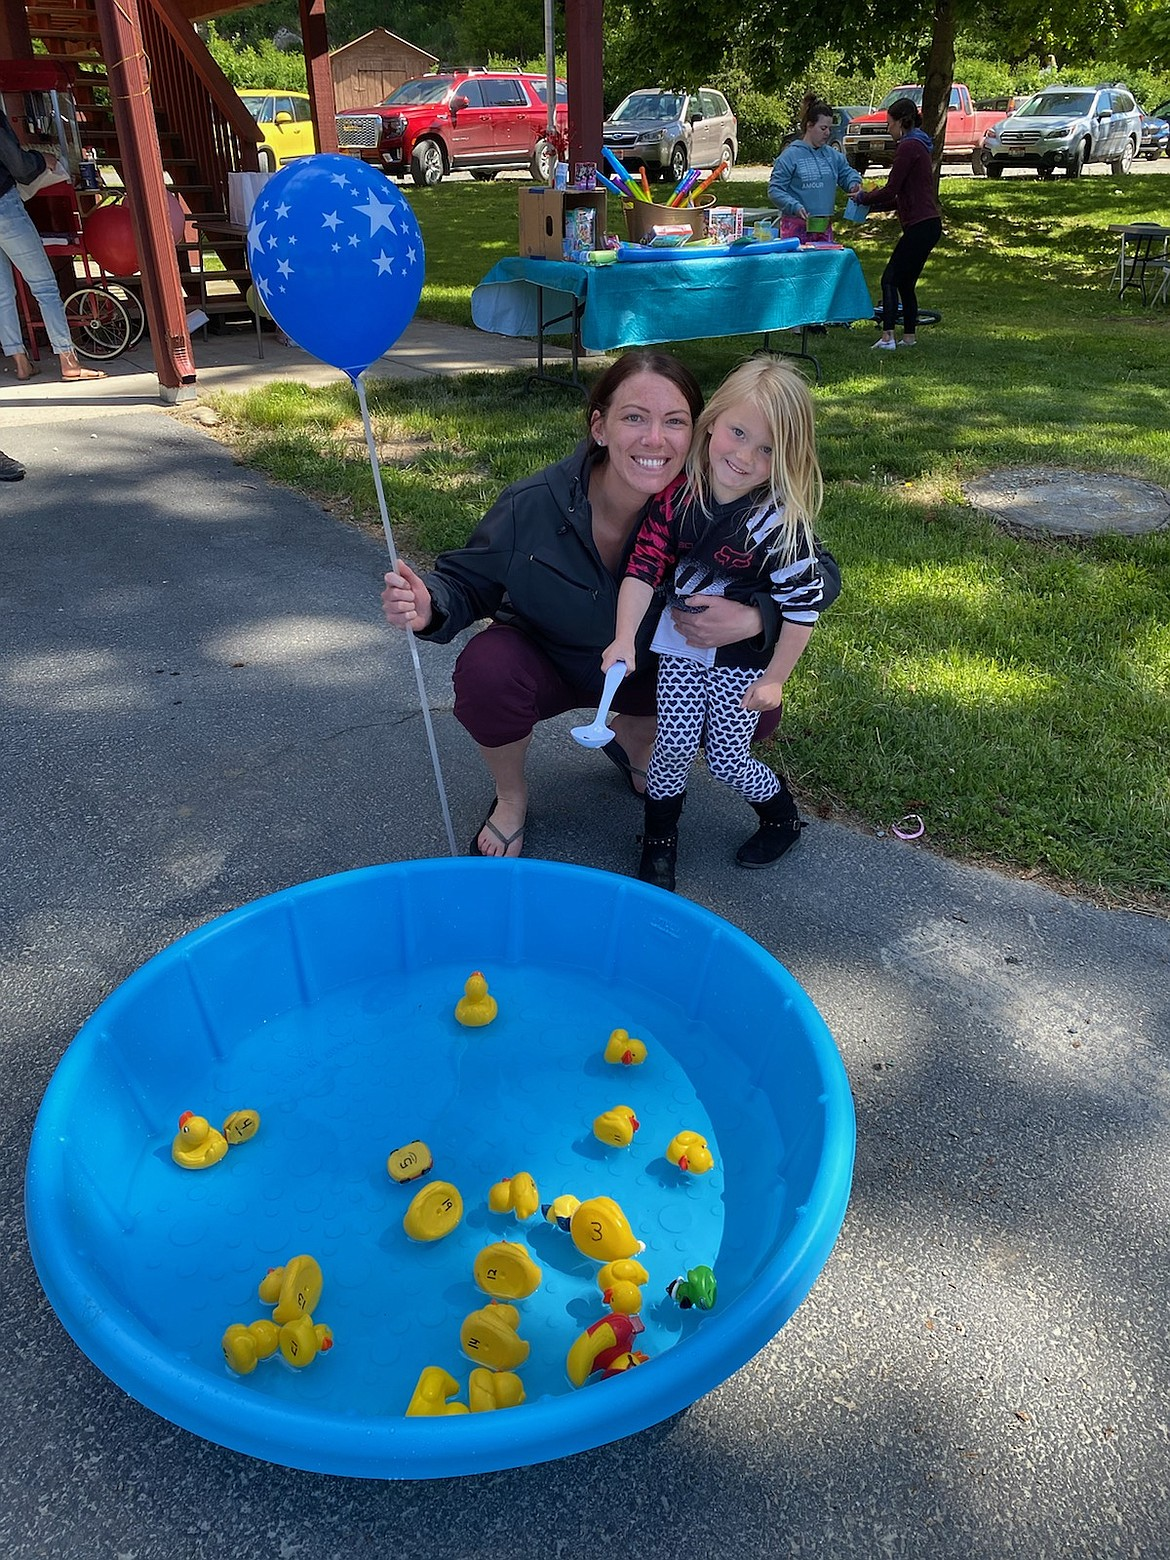 Families played a duck game at the event hosted by Hope Preschool, along with painting rocks and other activities.